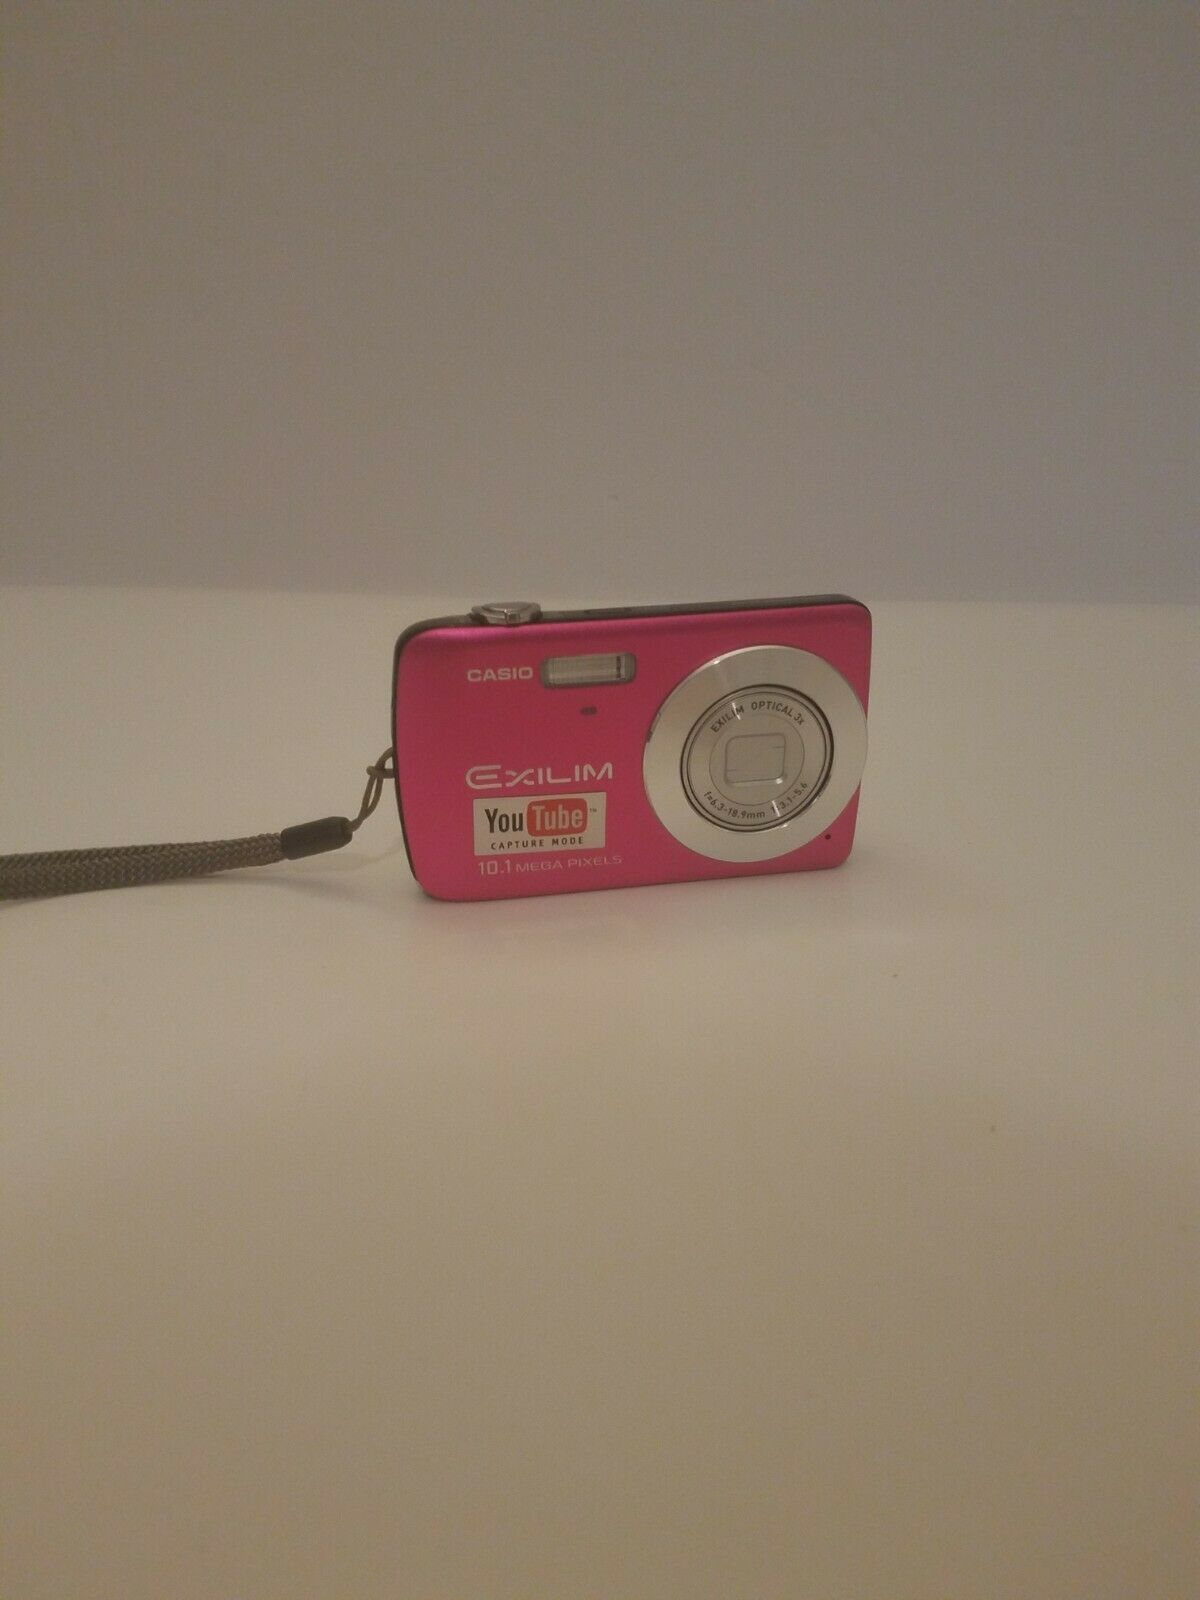 Primary image for Casio EXILIM EX-Z33 Digital Camera Pink 10.1 MP Untested For Parts or Repair B3